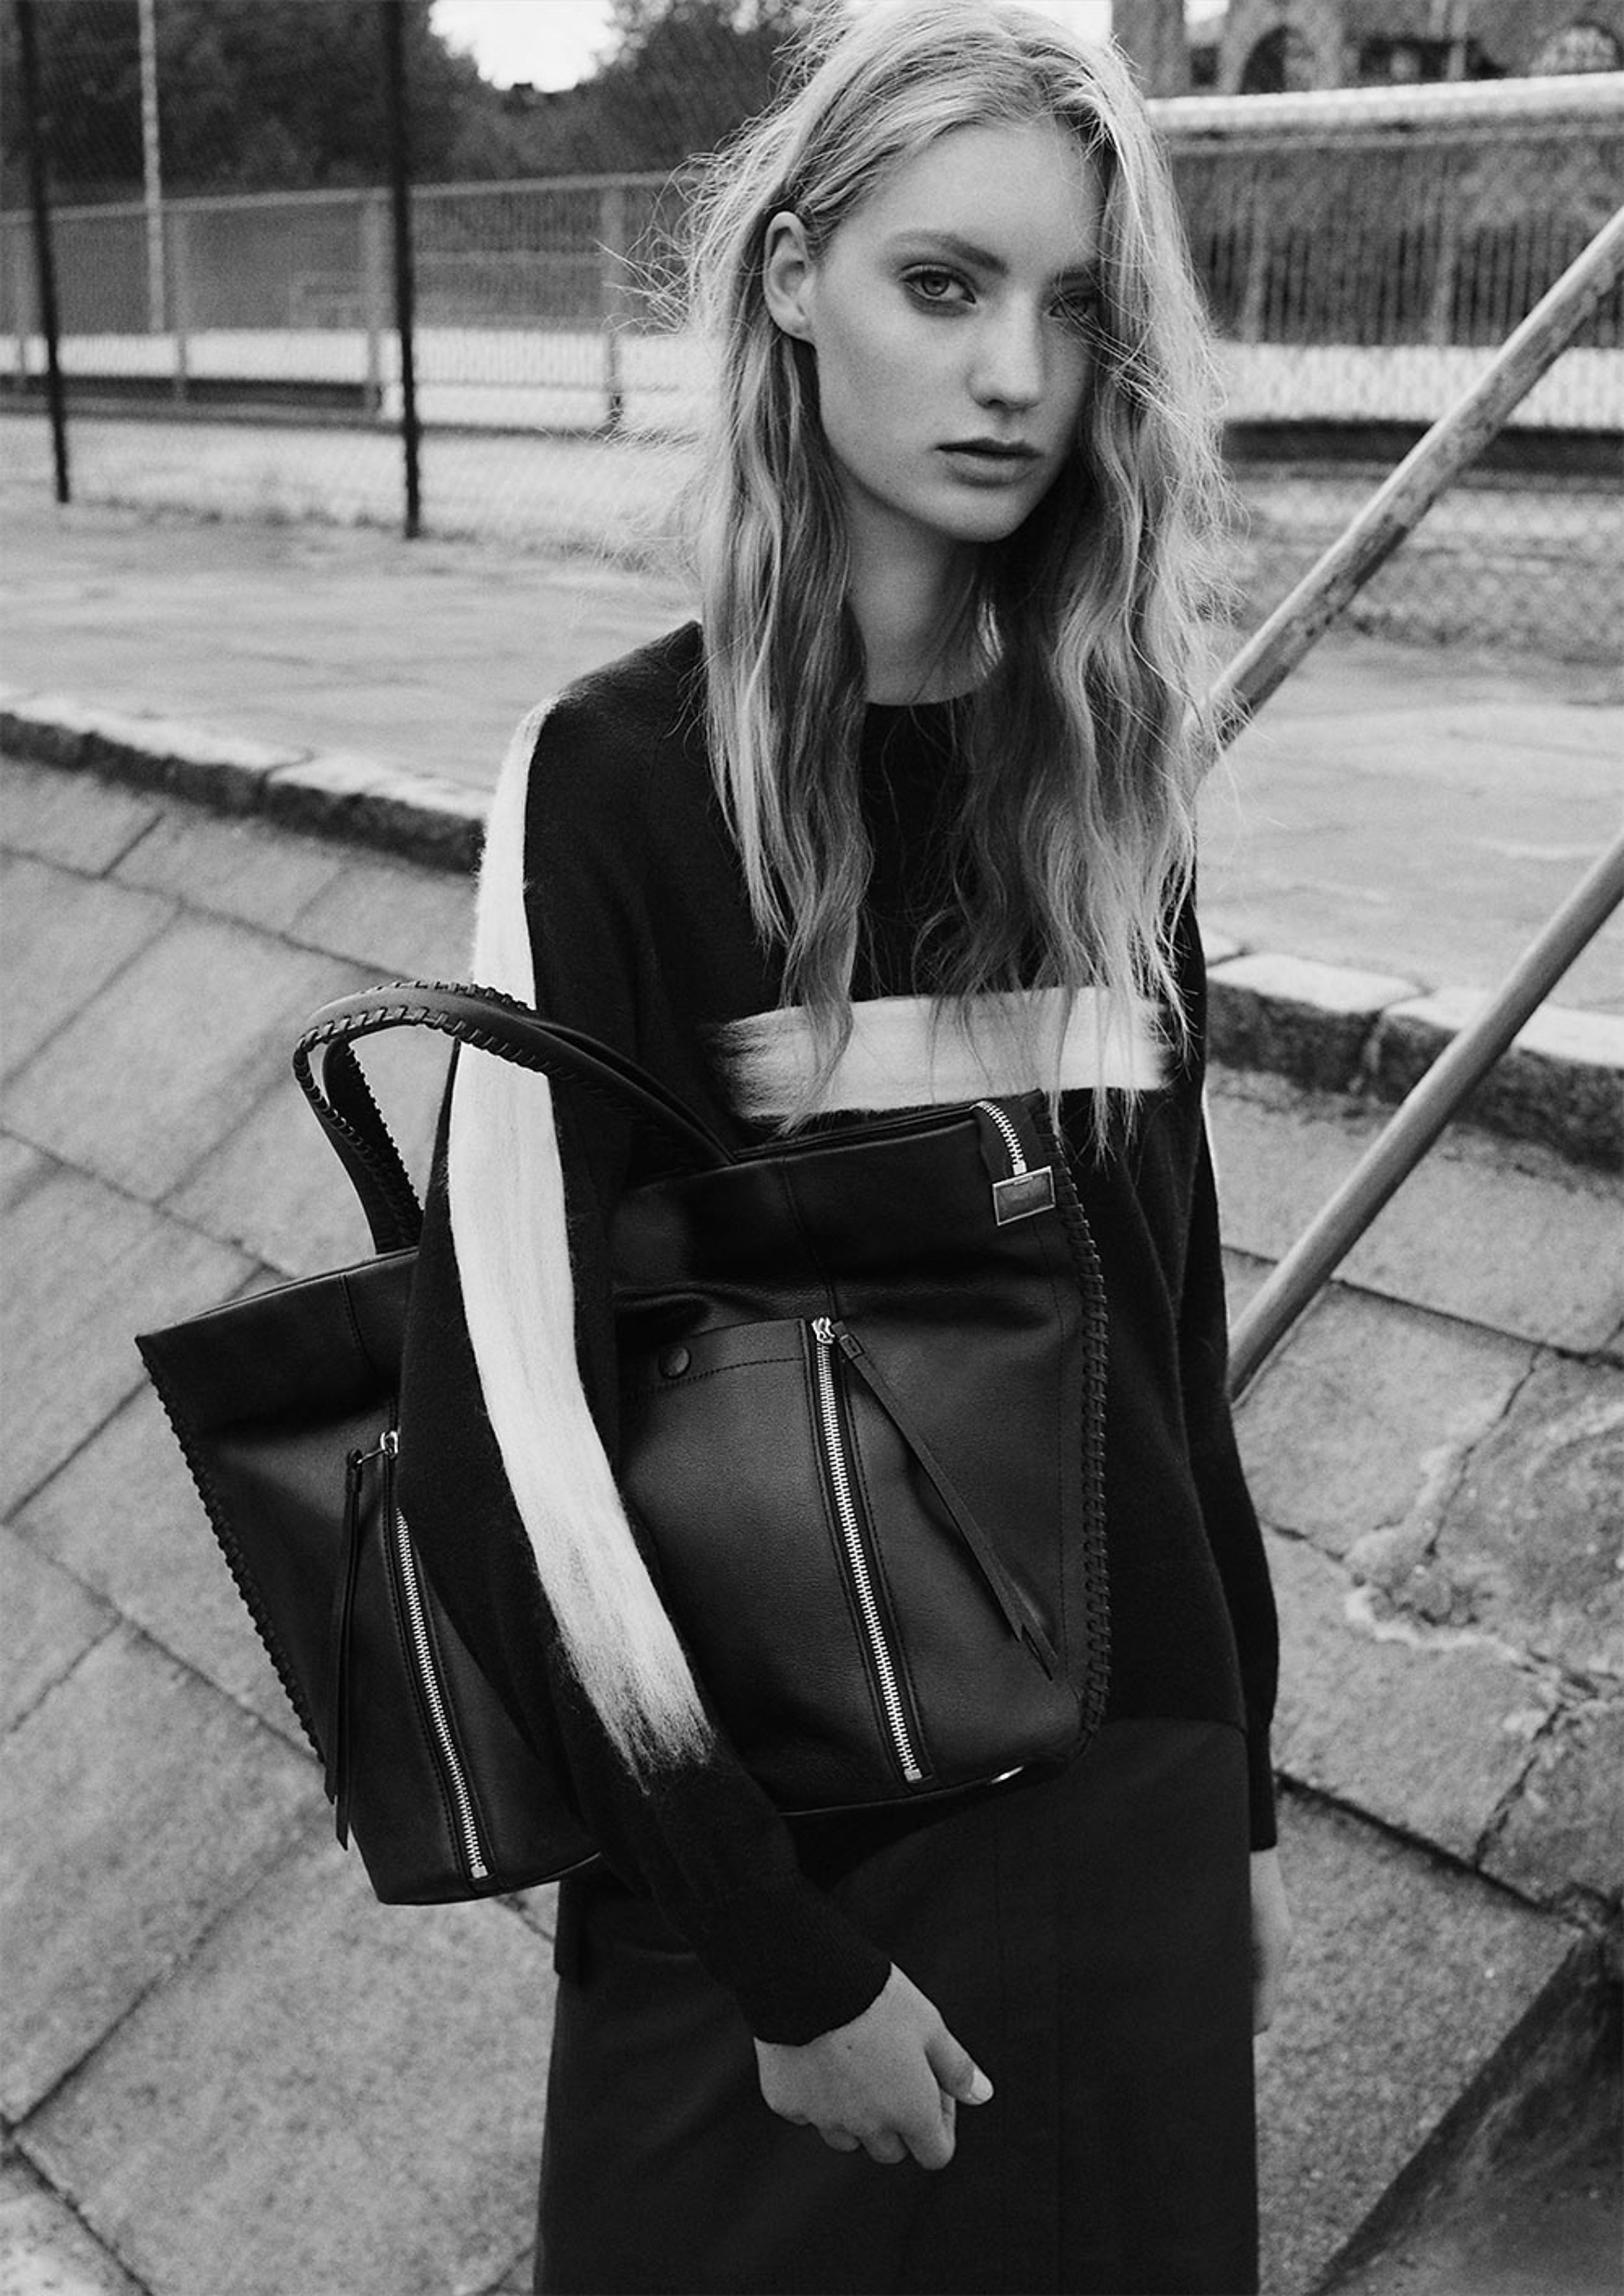 Pin by fraise on bw pinterest autumn and fashion